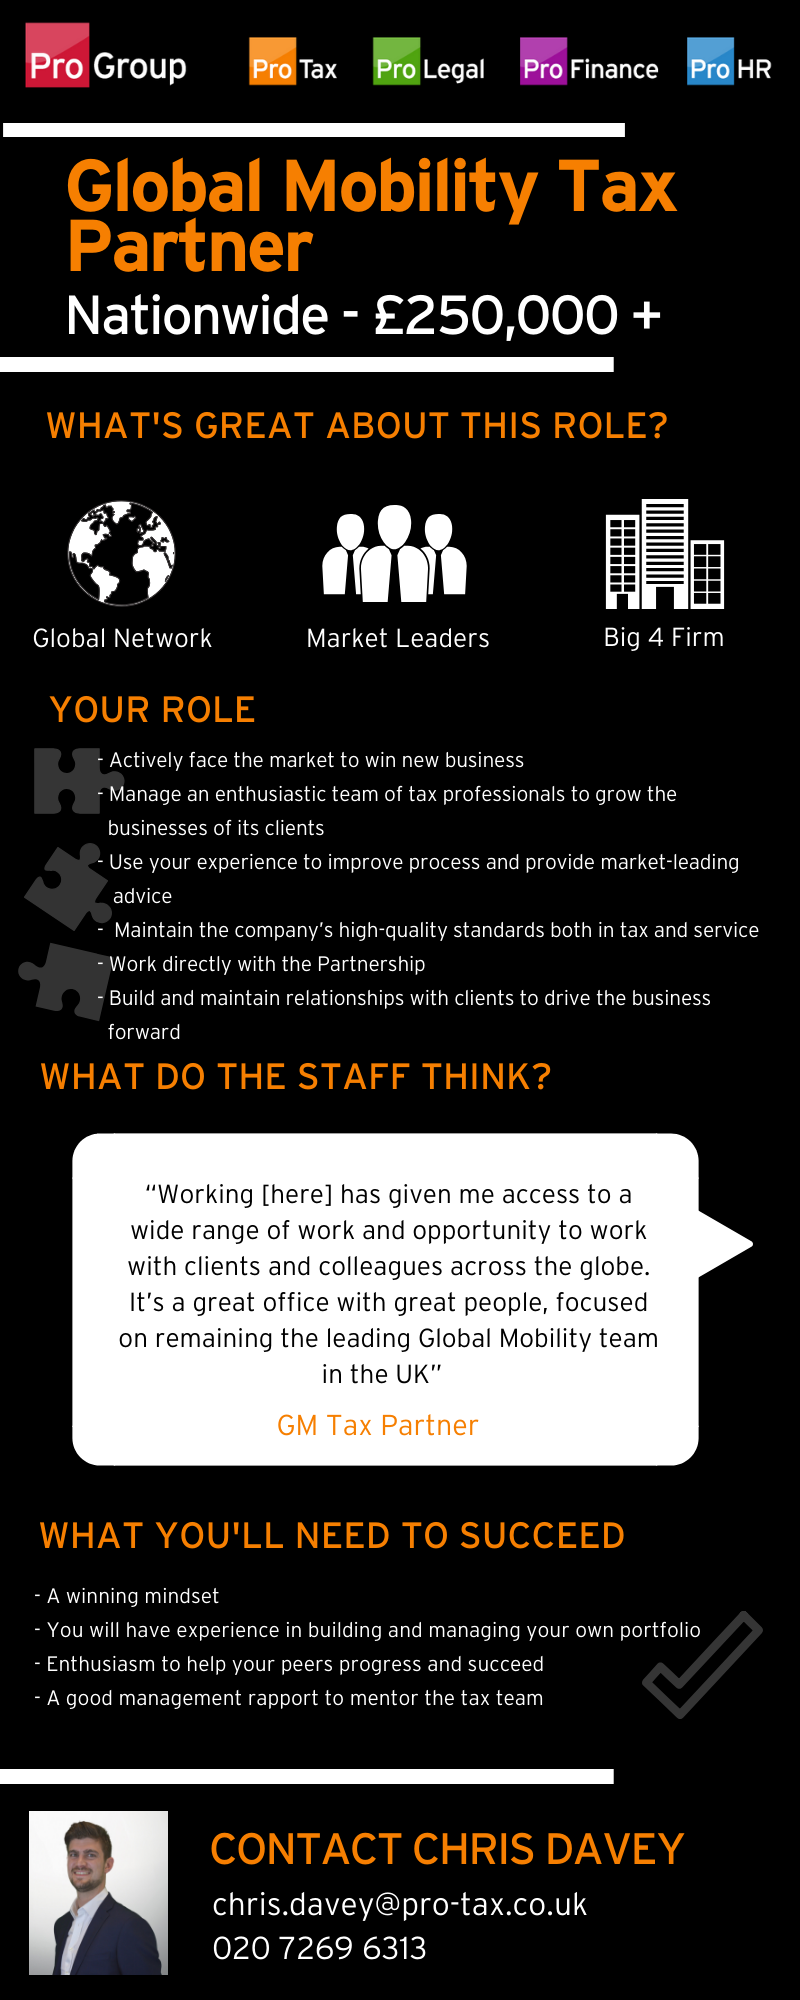 Global Mobility Tax Partner - Big 4 - Pro-Group